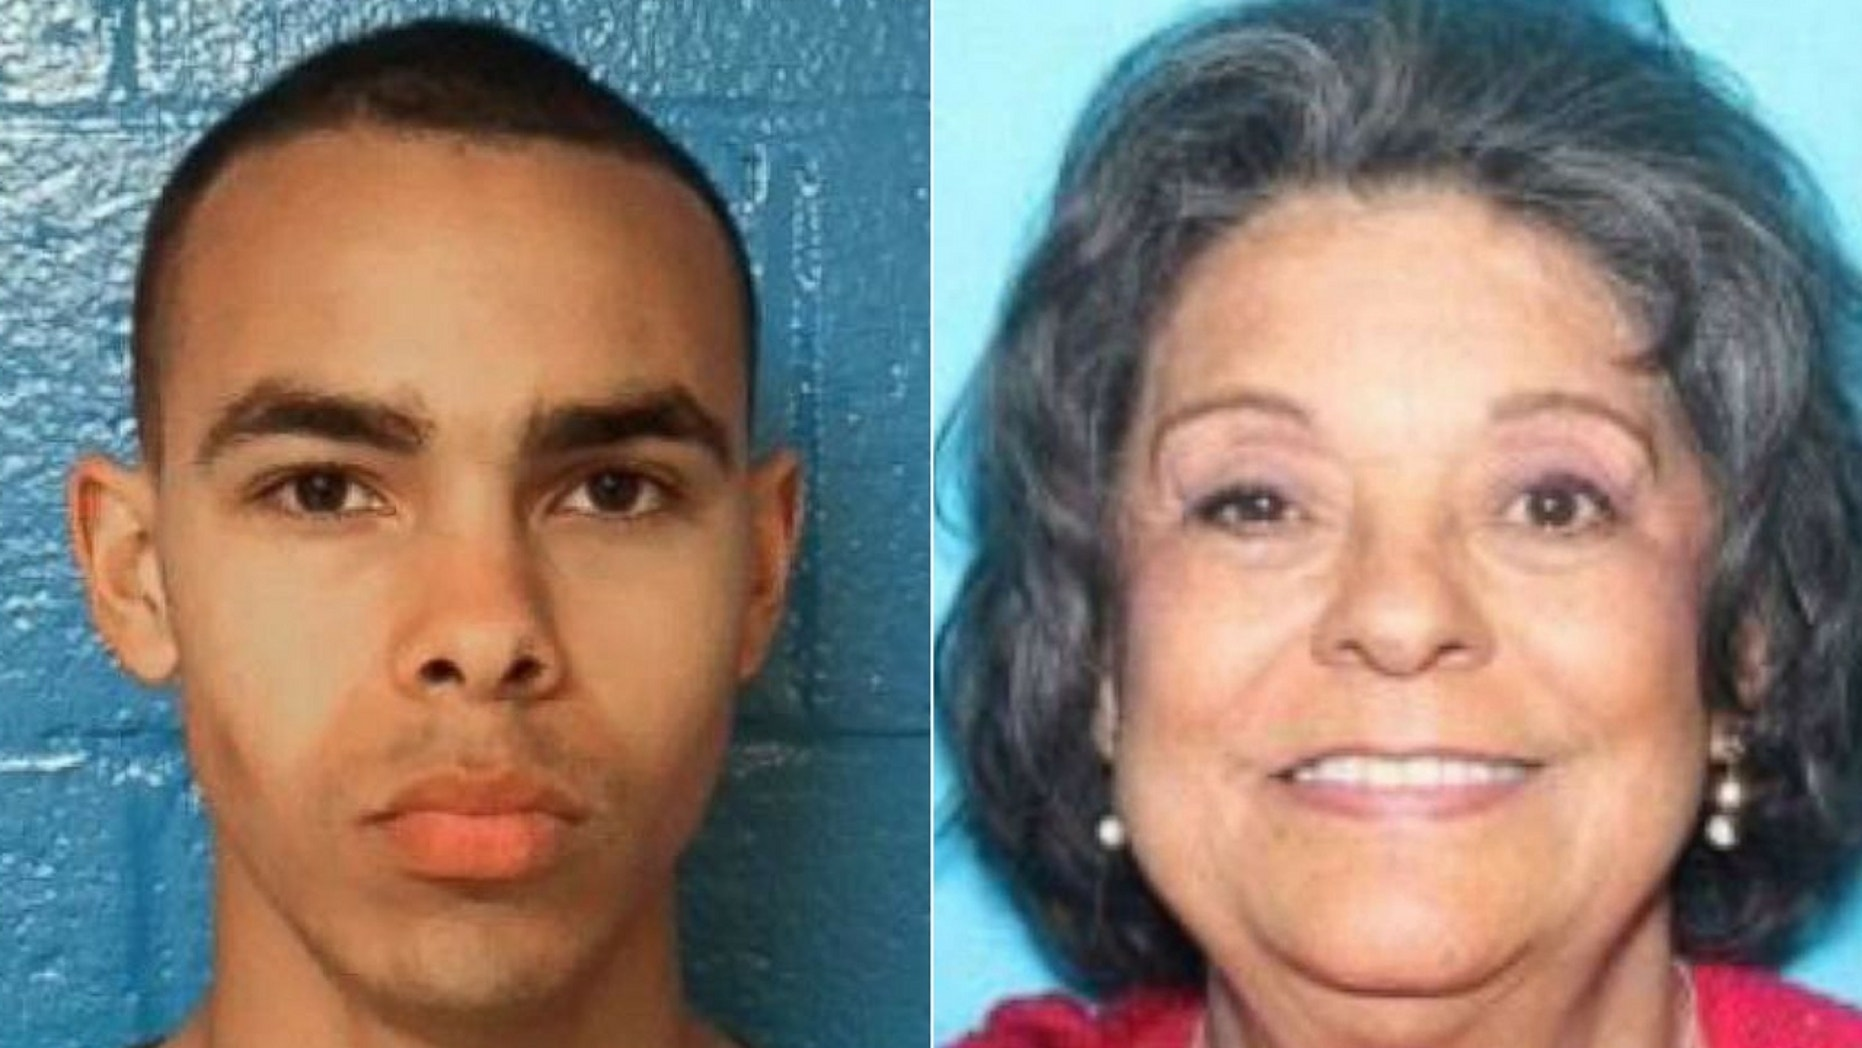 Isaiah Kahleal Evans Caesar was charged in the death of Sallie Copeland Evans, whose body was found off a North Carolina highway.